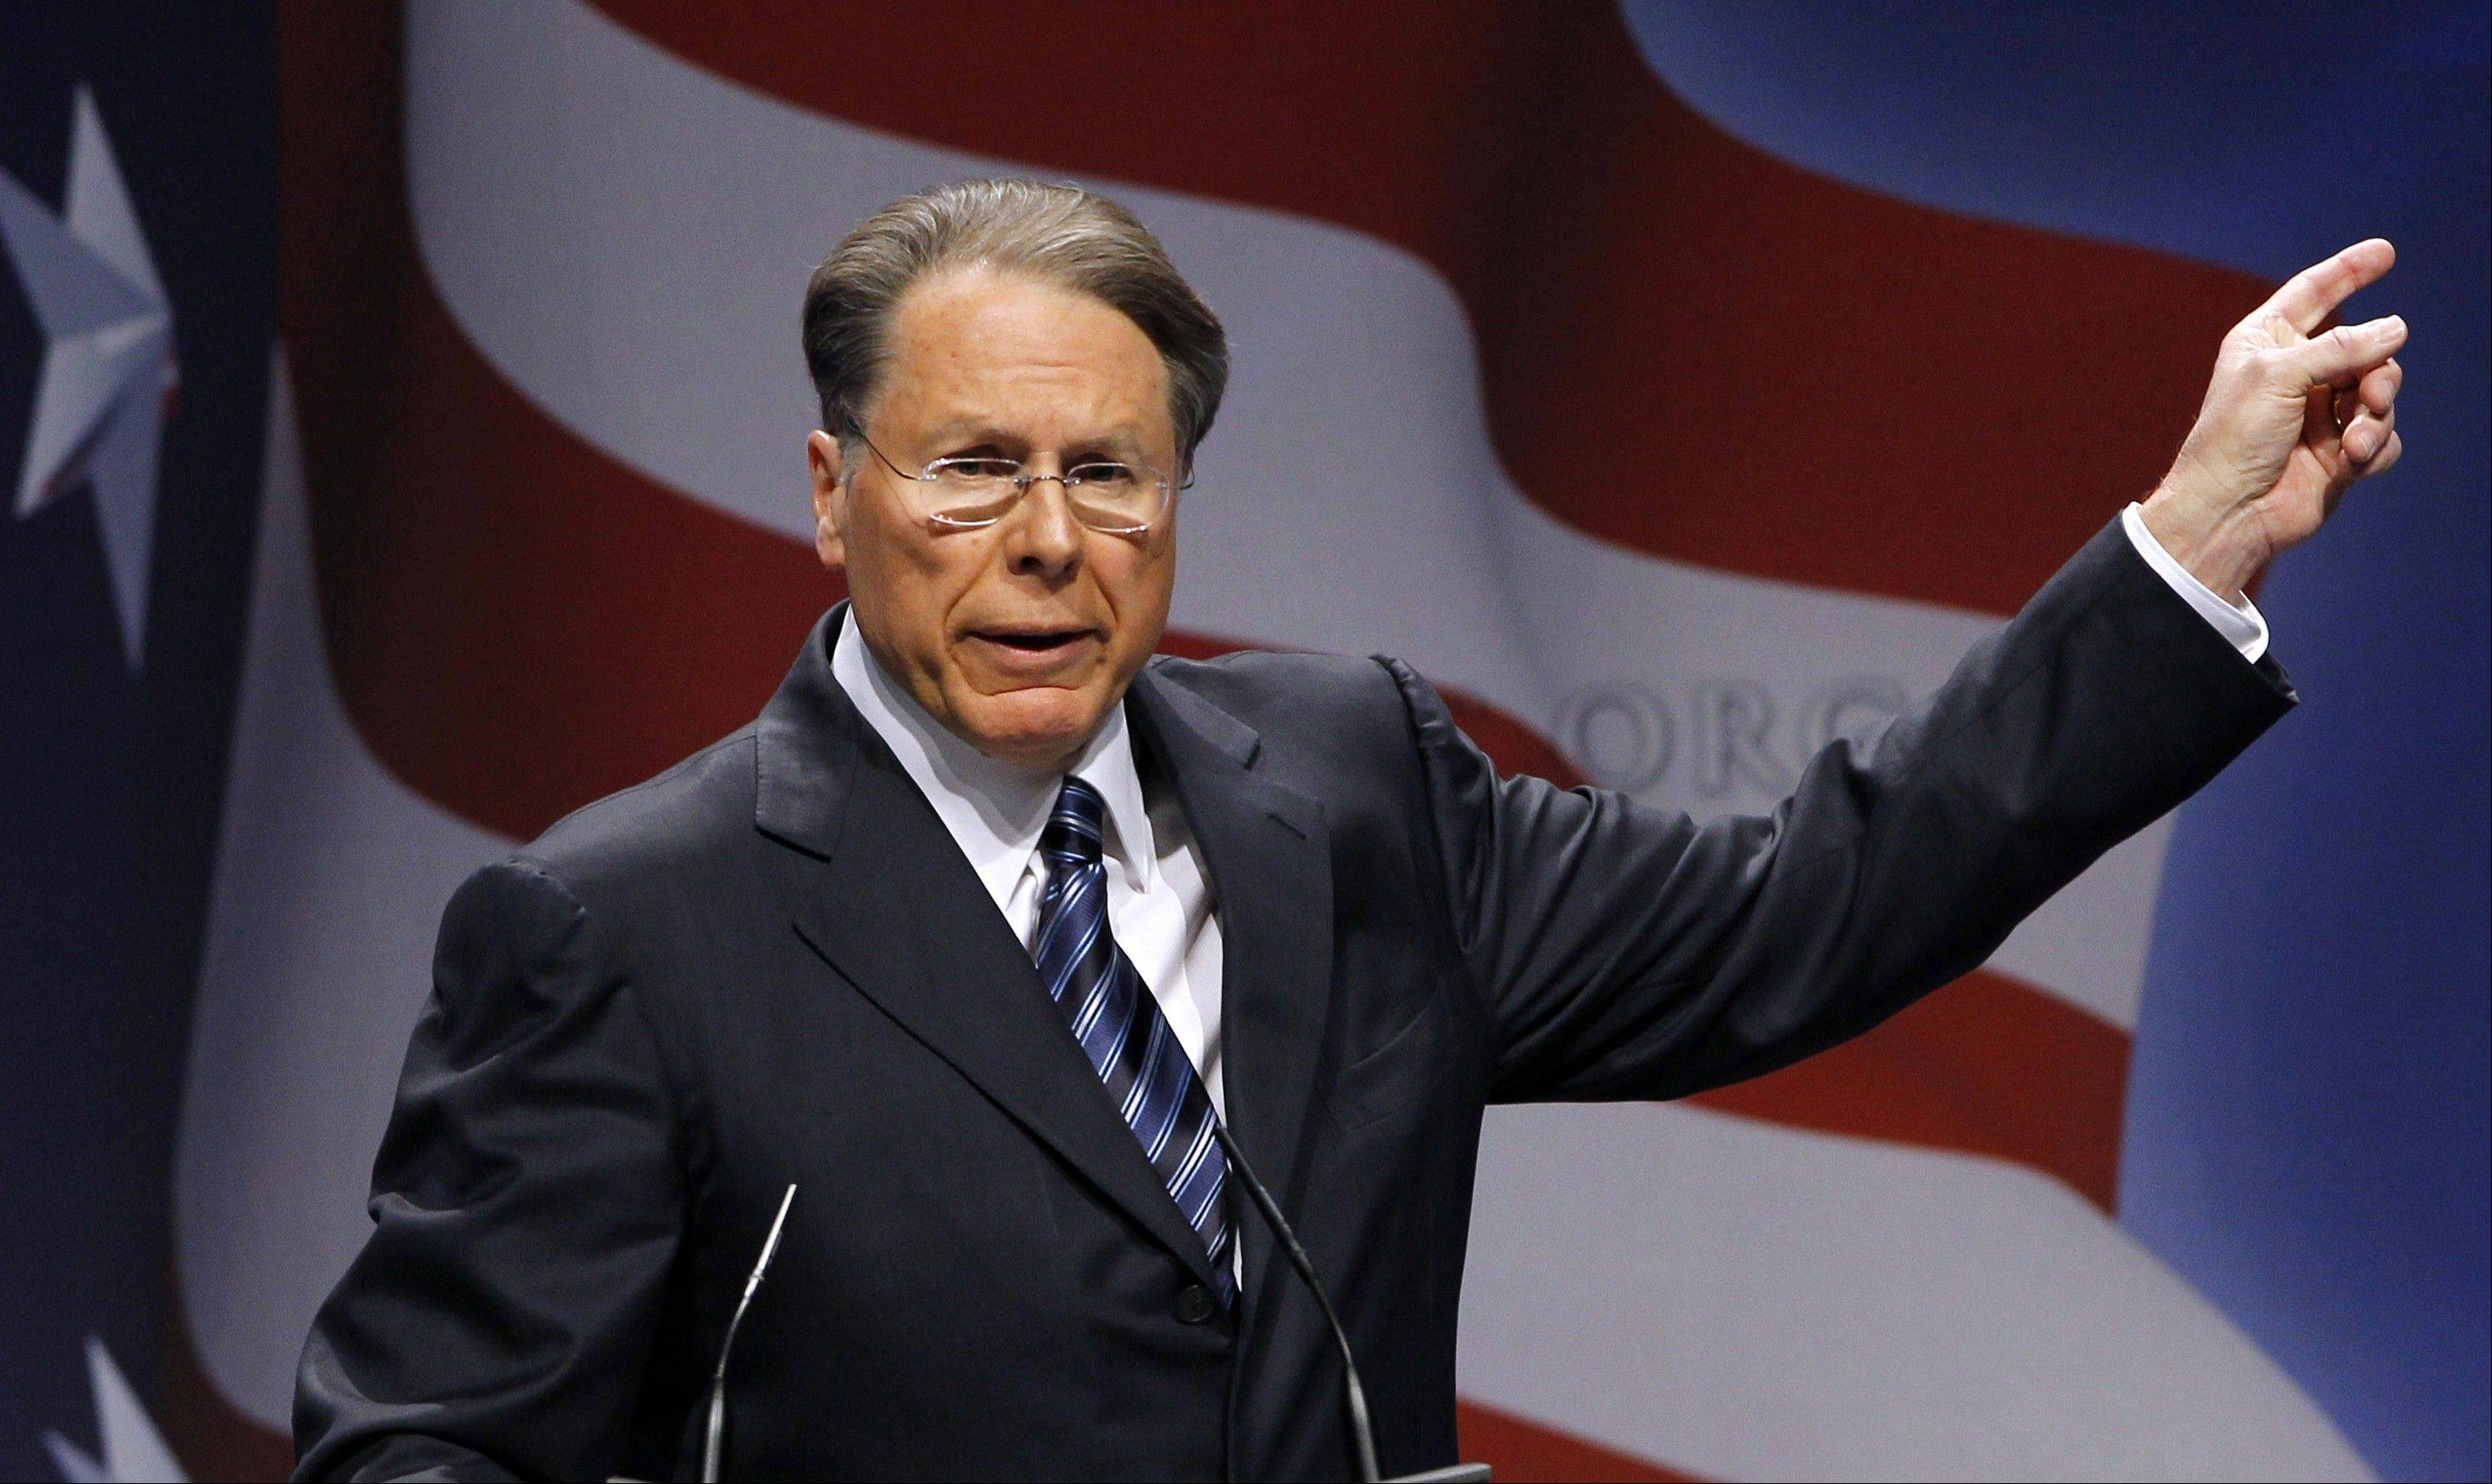 National Rifle Association Executive Vice President Wayne LaPierre said the country must focus on boosting security at schools, enforcing existing gun laws and taking more steps to deny guns to people with mental illnesses.